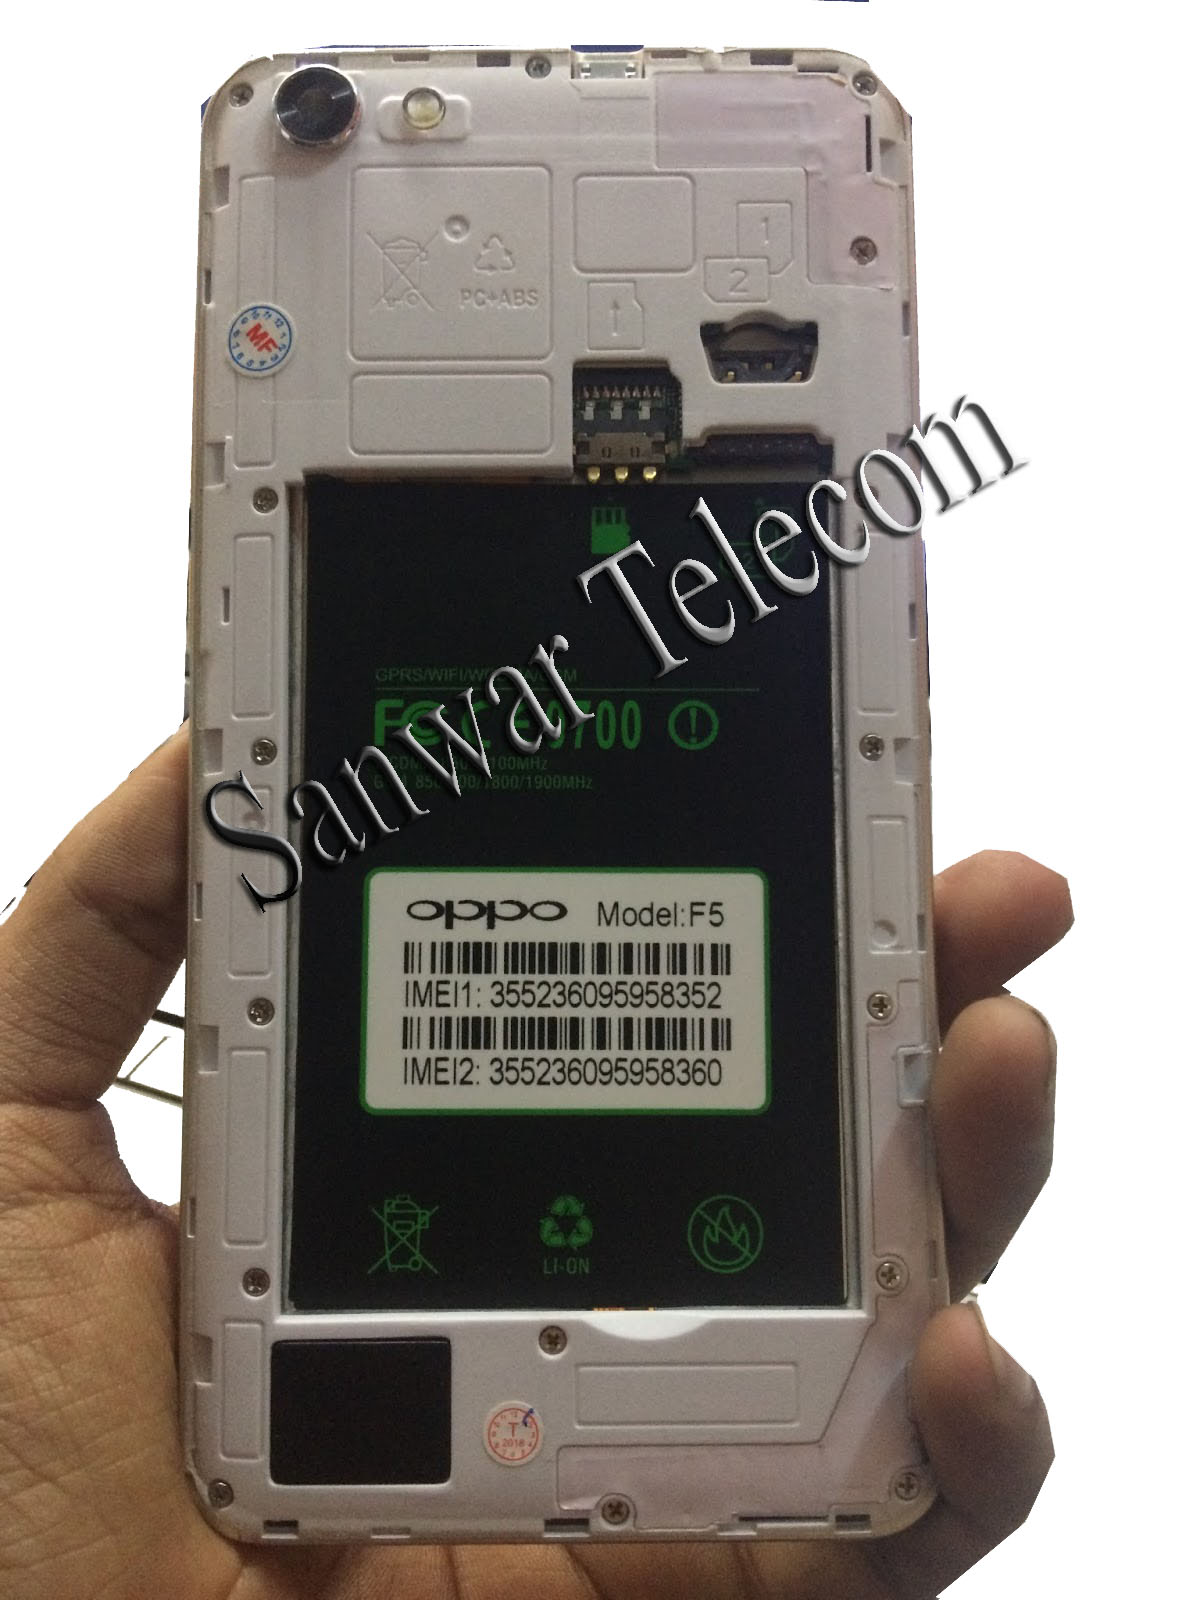 FirmwareAmi: Oppo Clone Firmware F5 MT6580 Flash File With Password